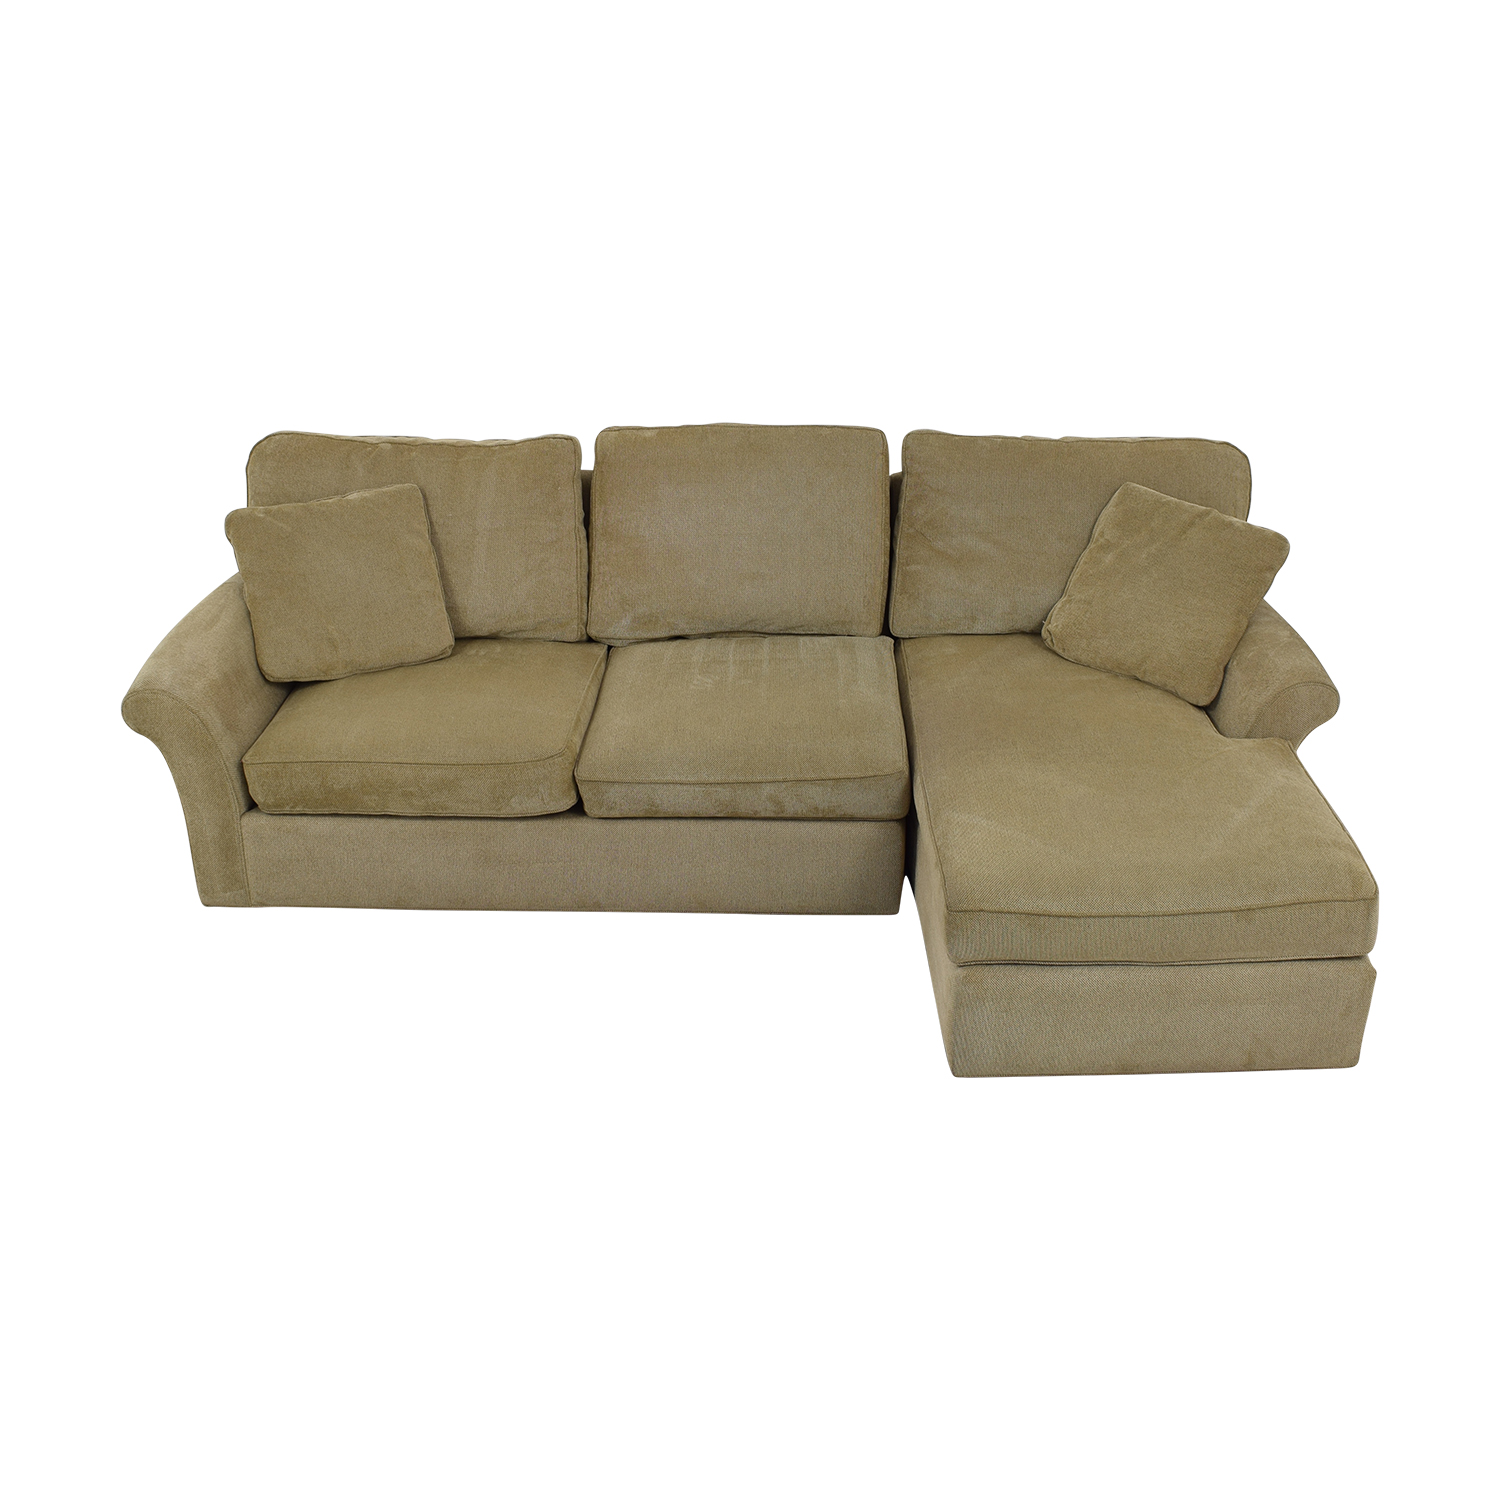 63 Off Macy S Macy S Beige Chaise Sectional Sofas